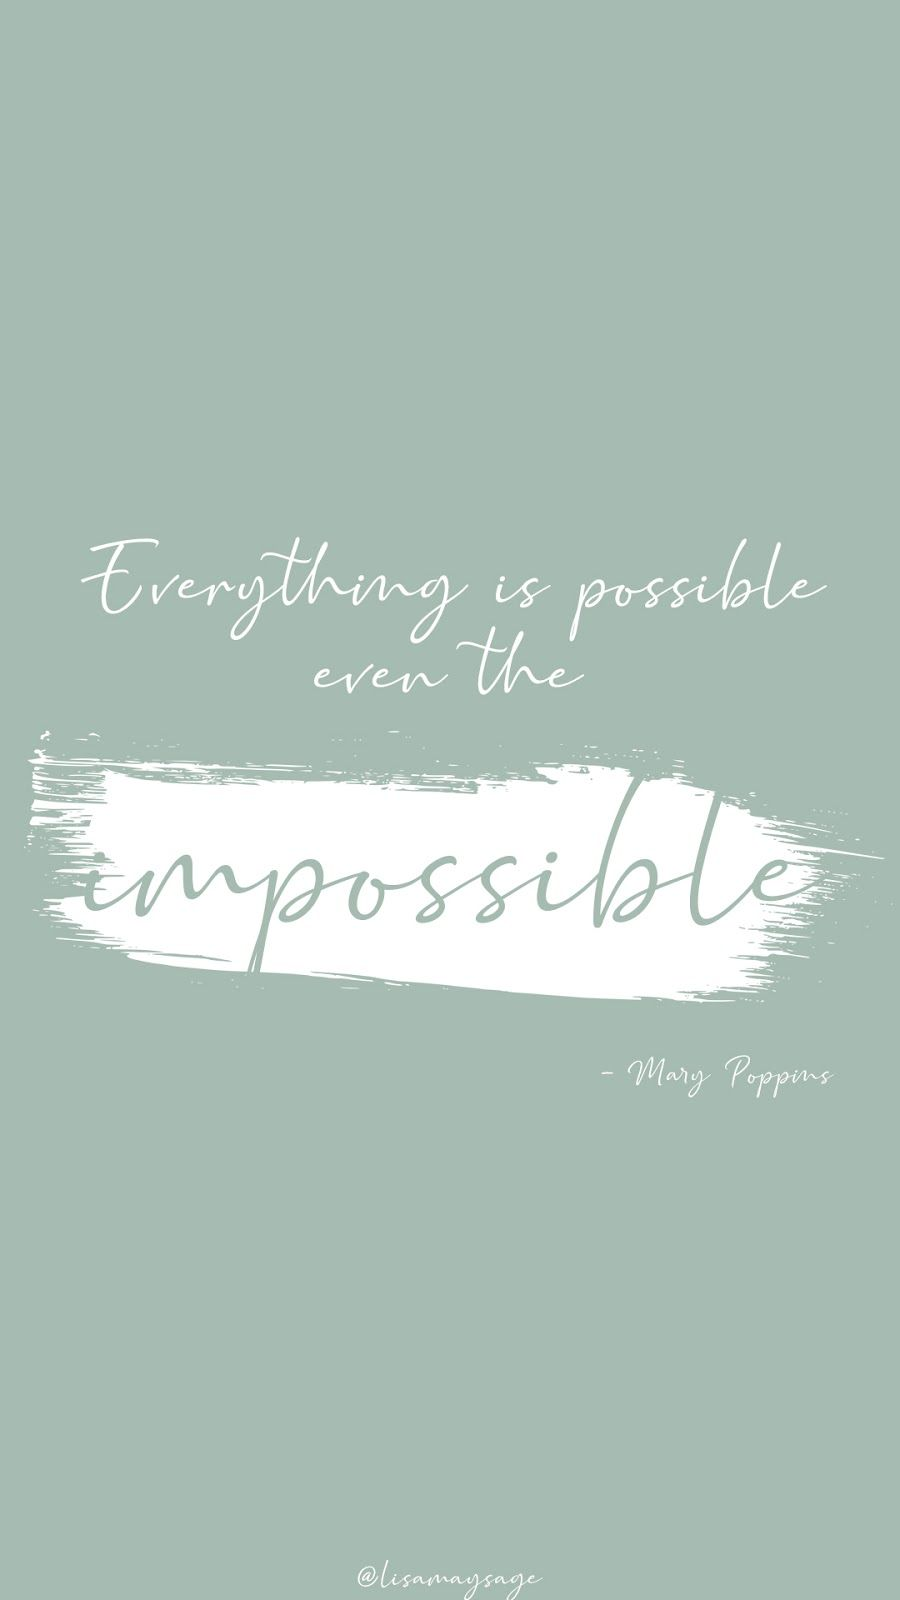 Mary Poppings Quote Disney Quote Wallpaper Disney Quote Wallpaper Iphone Phone Wallpaper Quotes